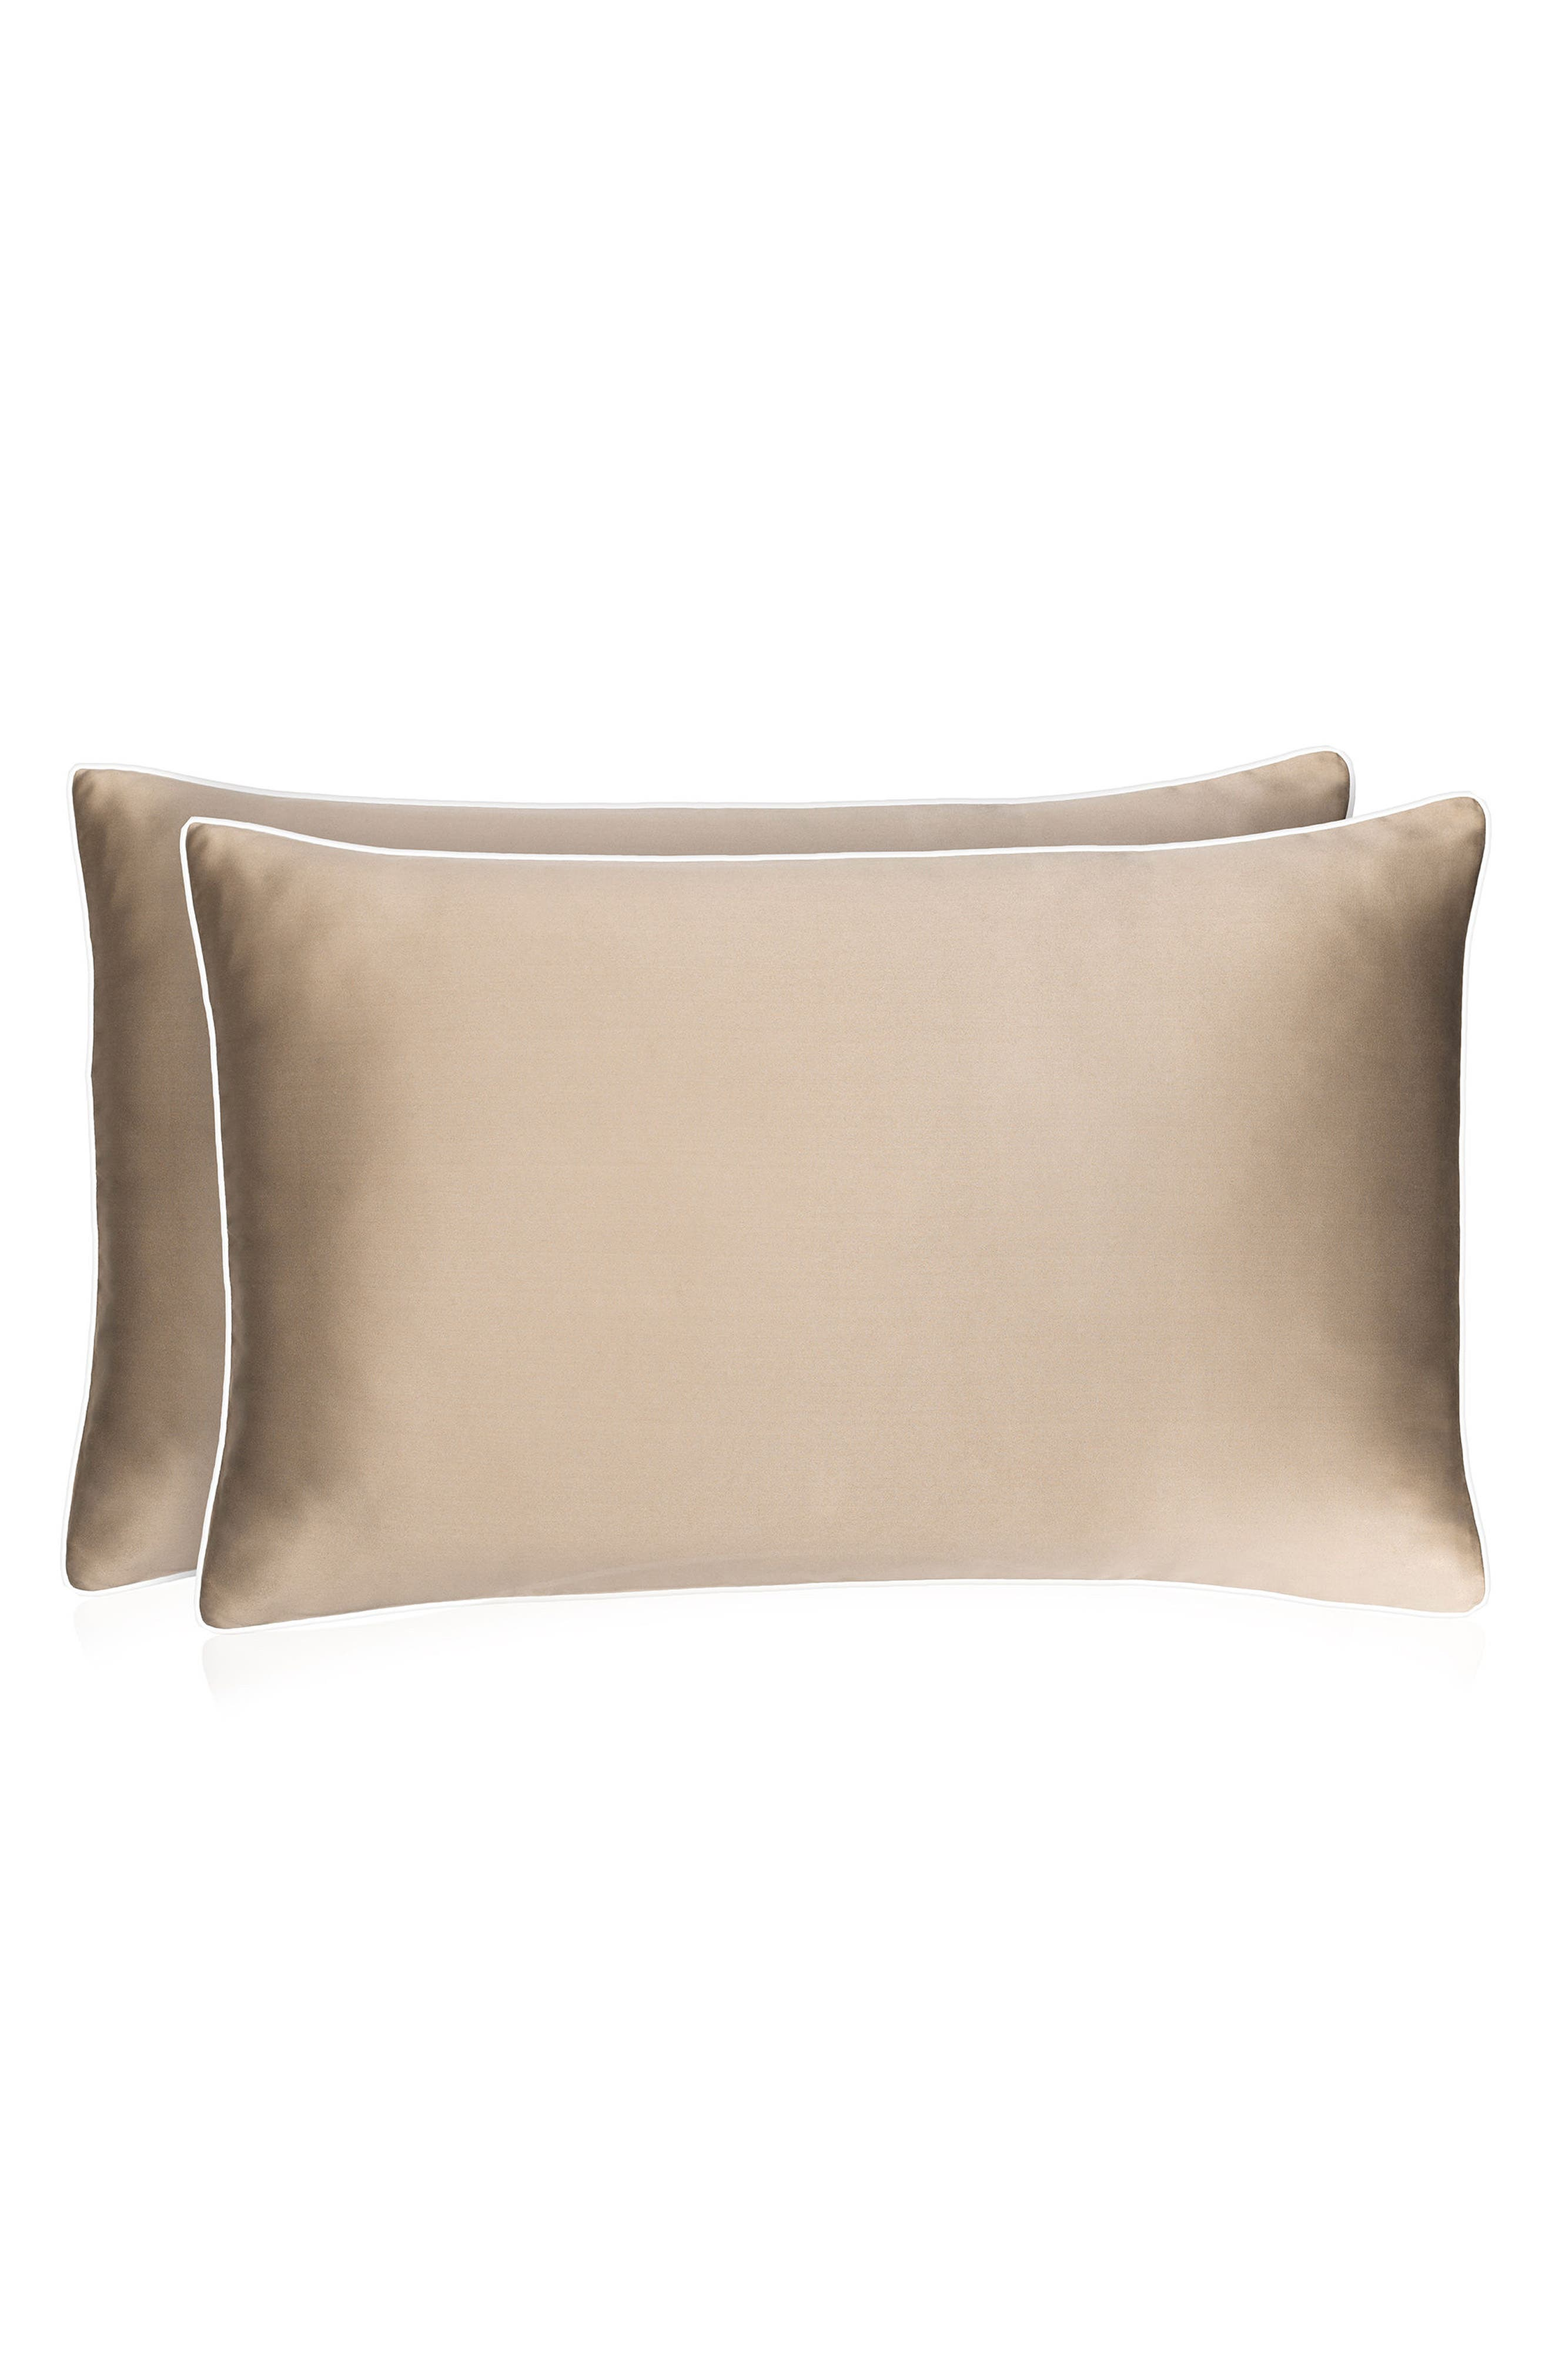 Skin Rejuvenating Pillowcase Set,                             Main thumbnail 1, color,                             No Color